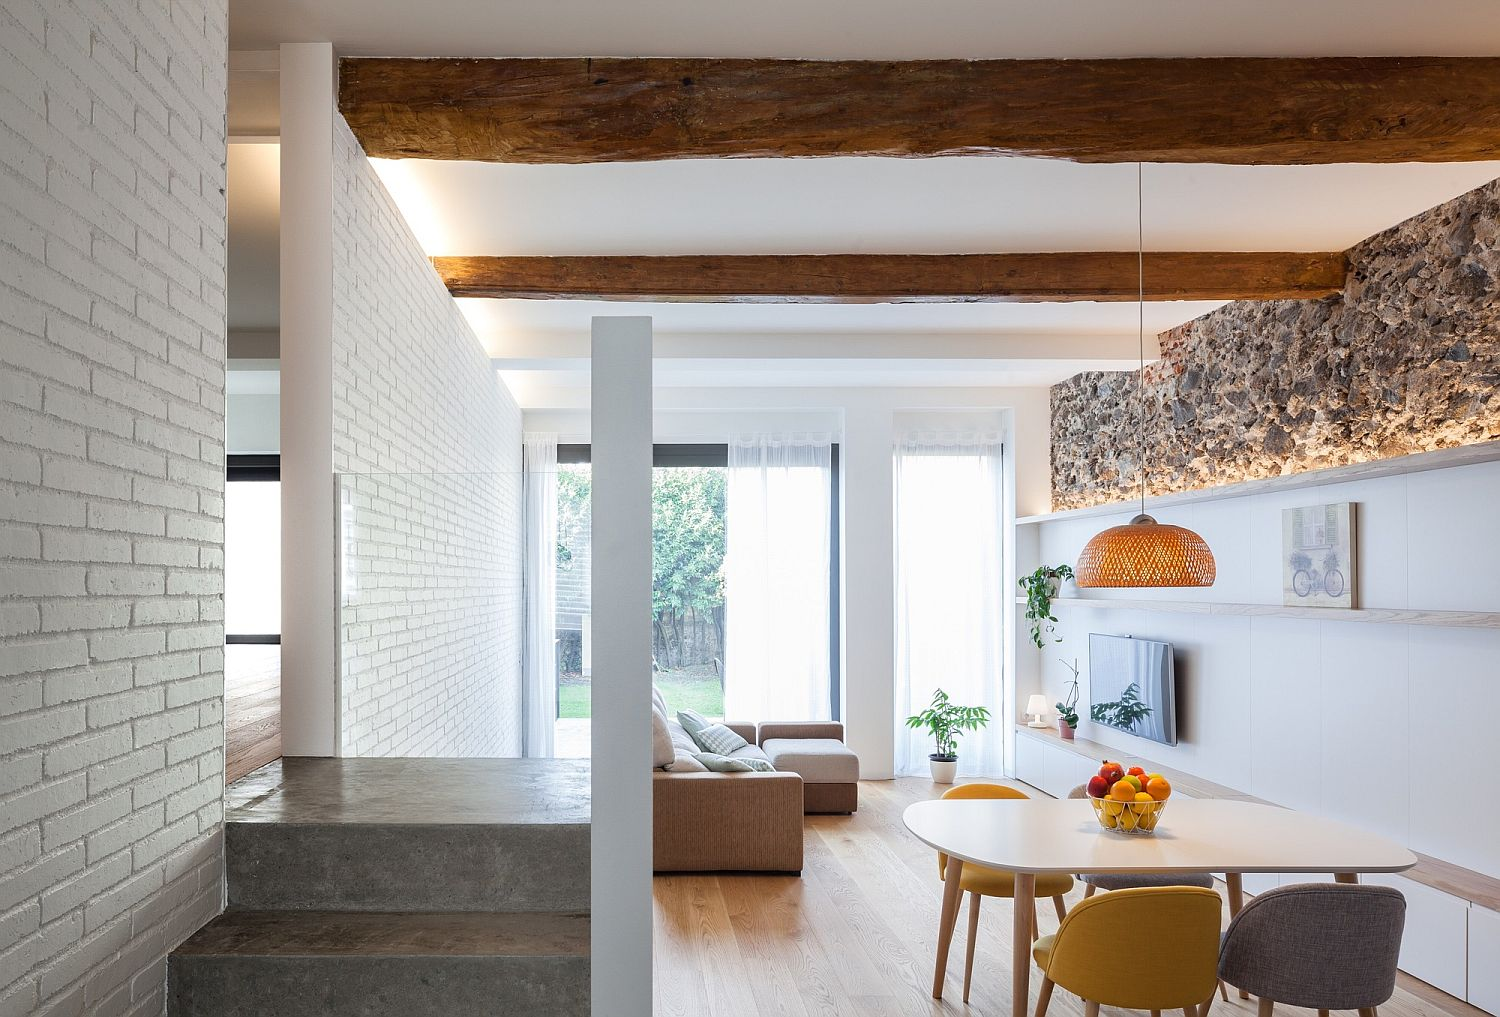 Living-area-of-the-Spanish-home-with-light-and-cheerful-appeal